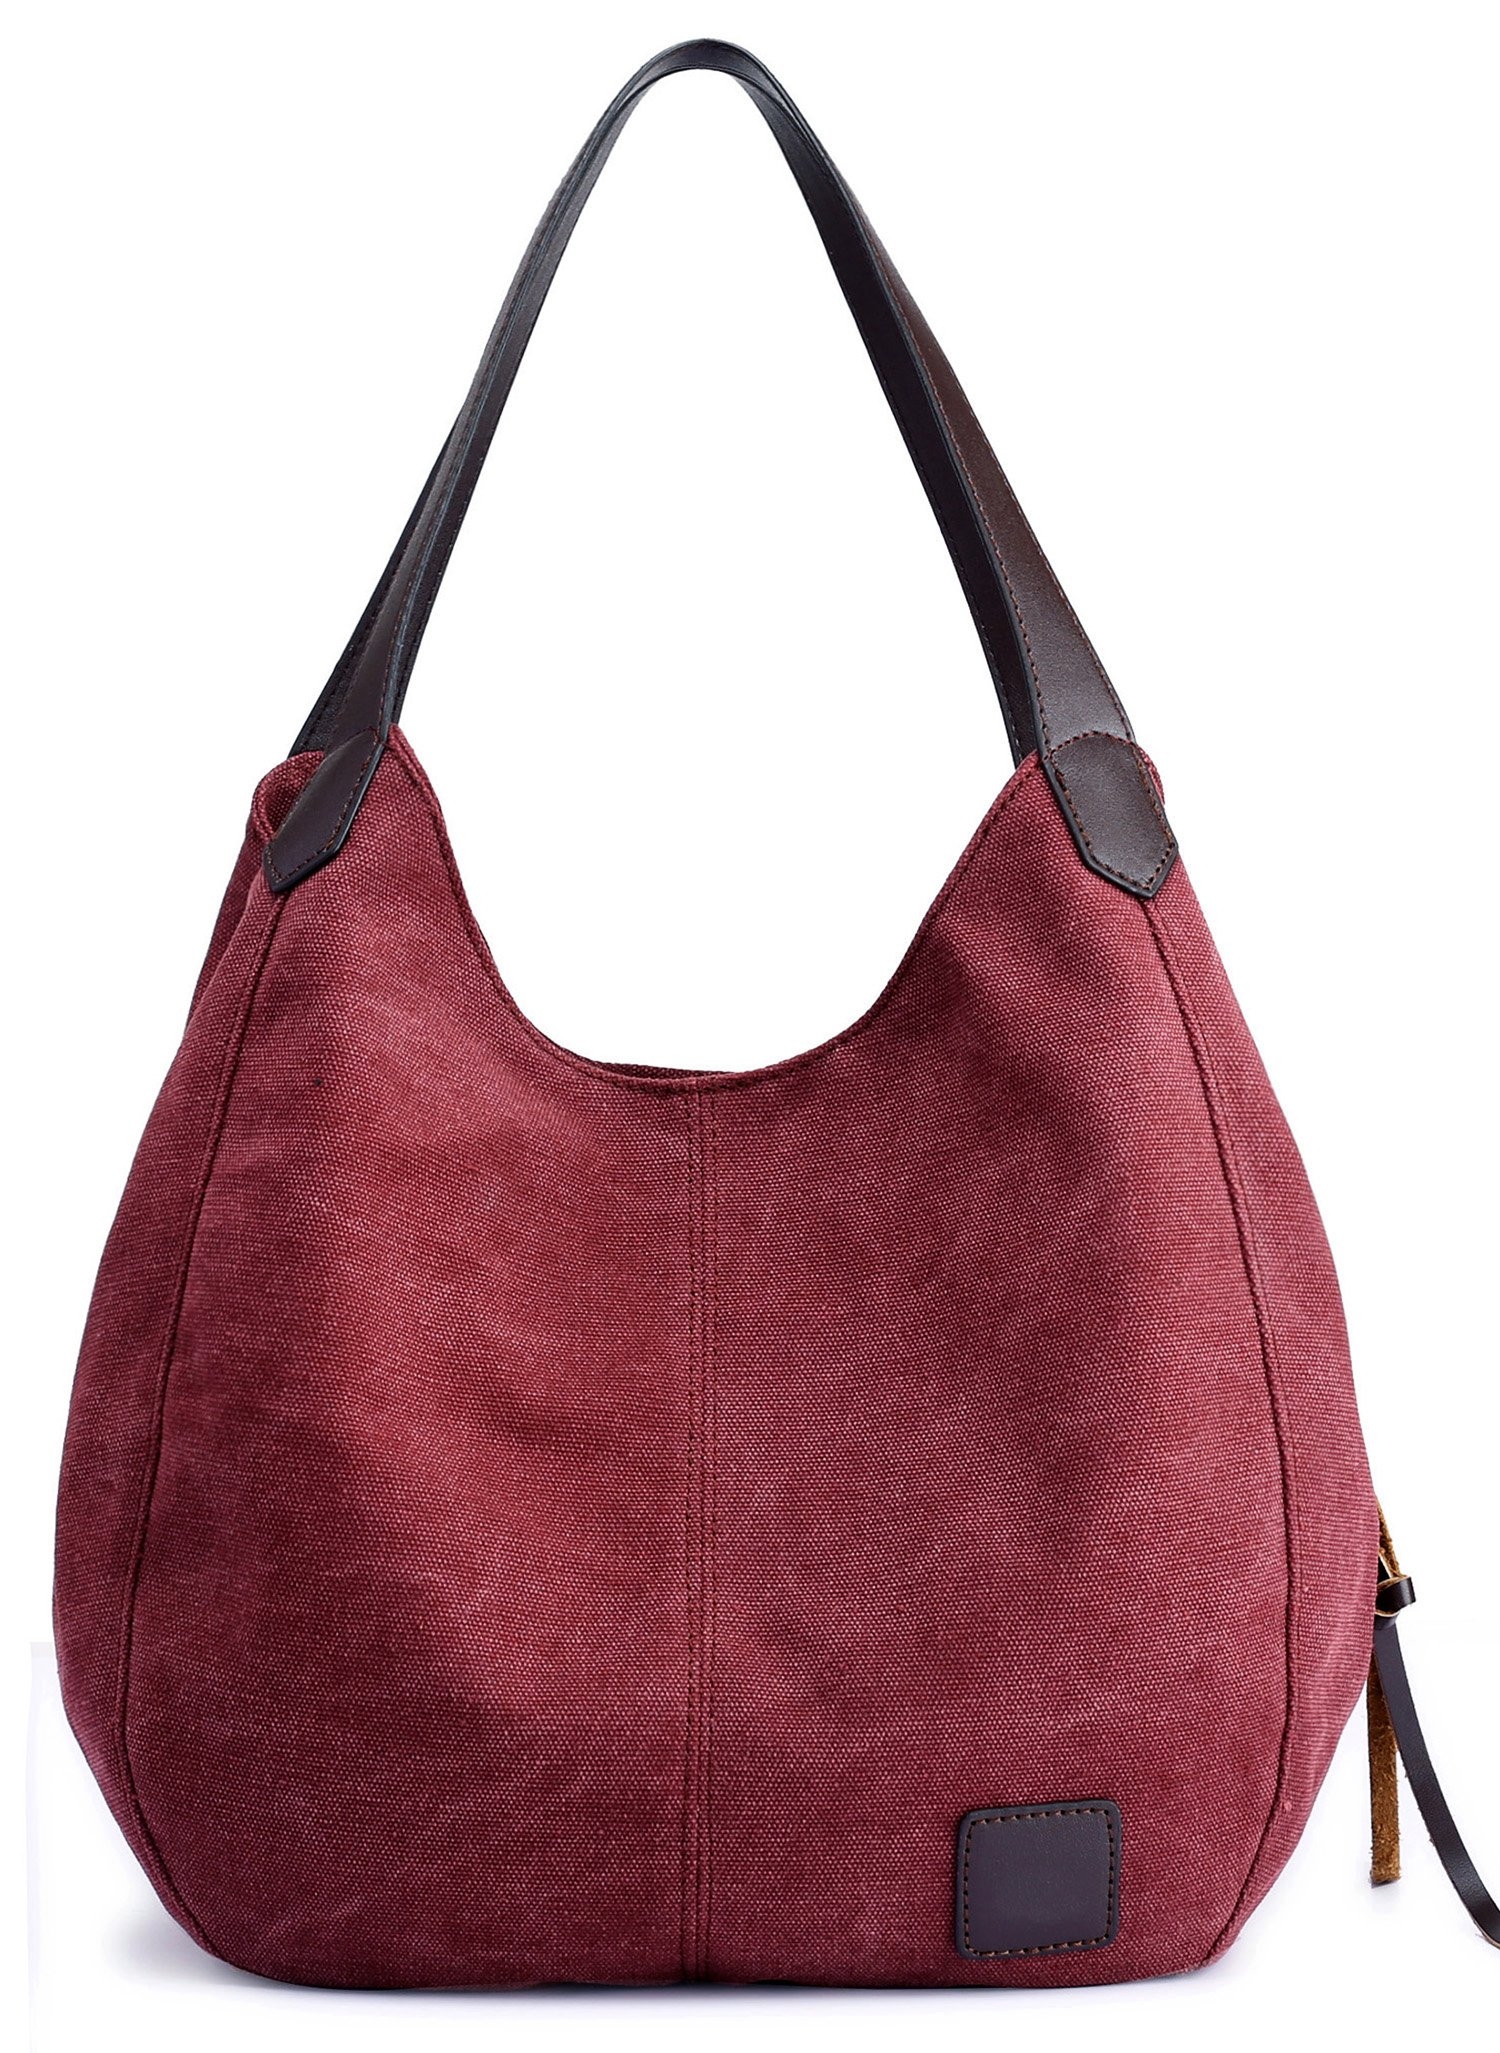 ArcEnCiel Fashion Women's Cotton Canvas Handbags Shoulder Bags Totes Purses (Maroon)